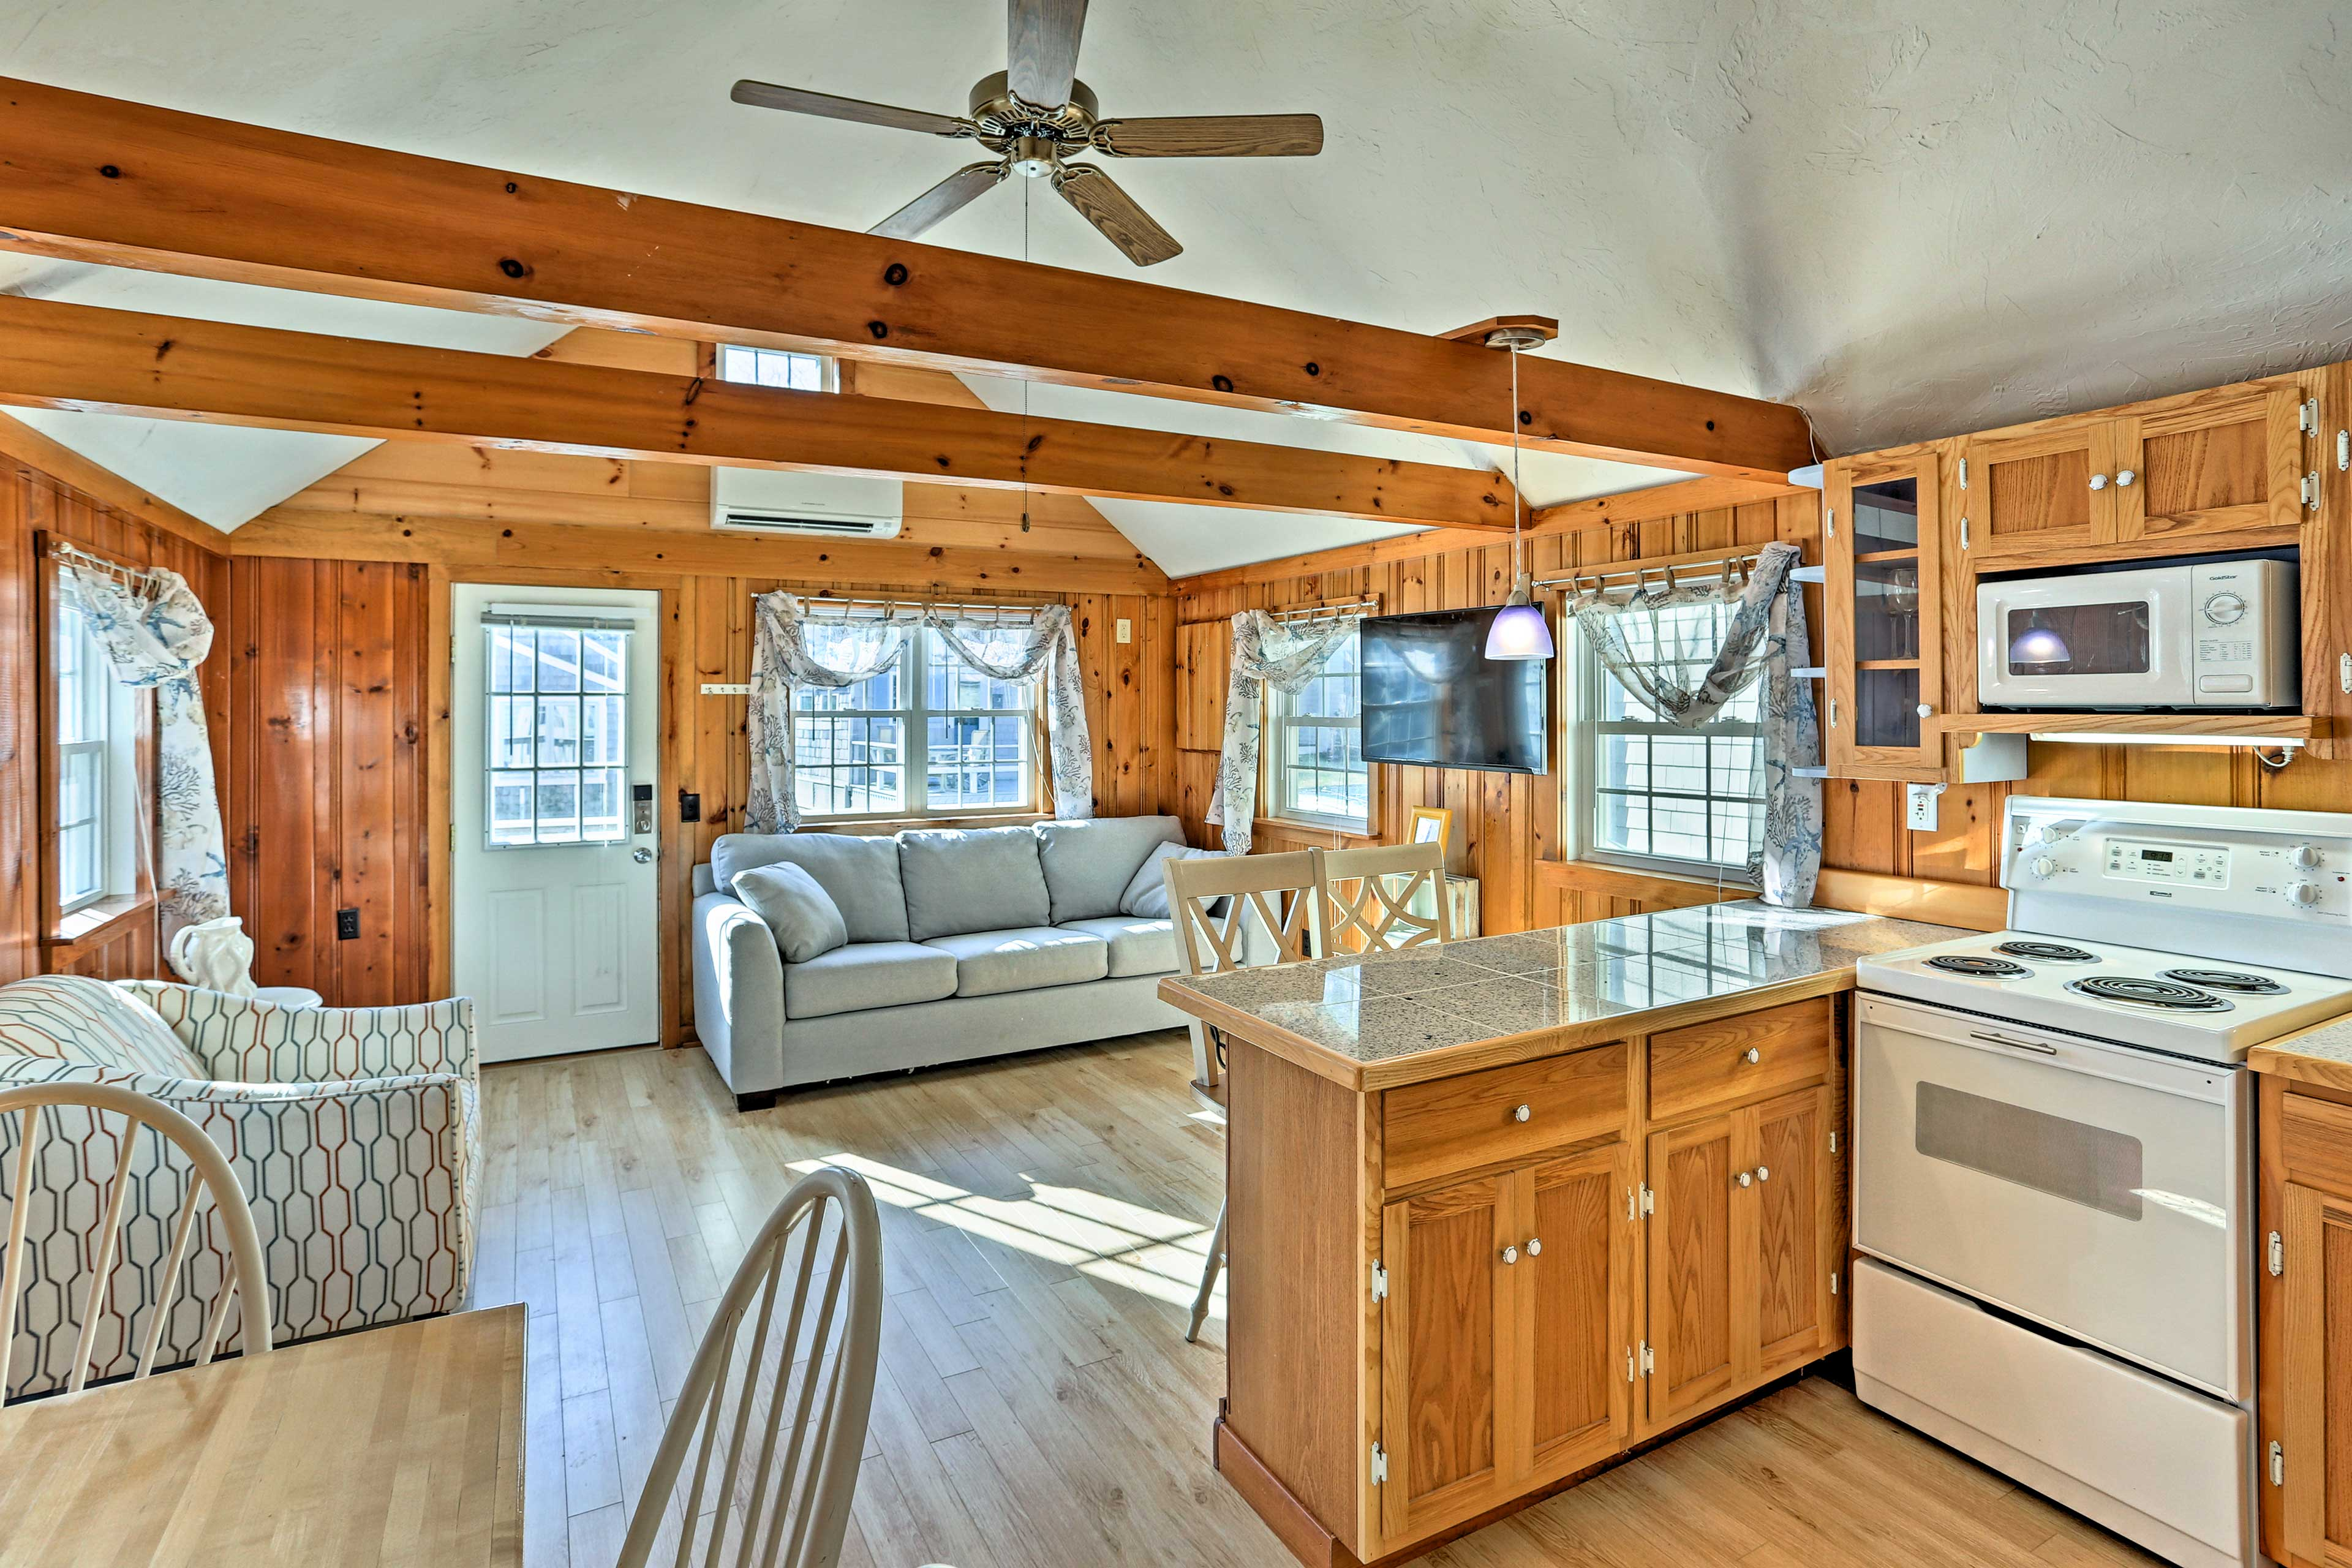 Inside you'll find a quaint cabin-like space brimming with Cape Cod charm.